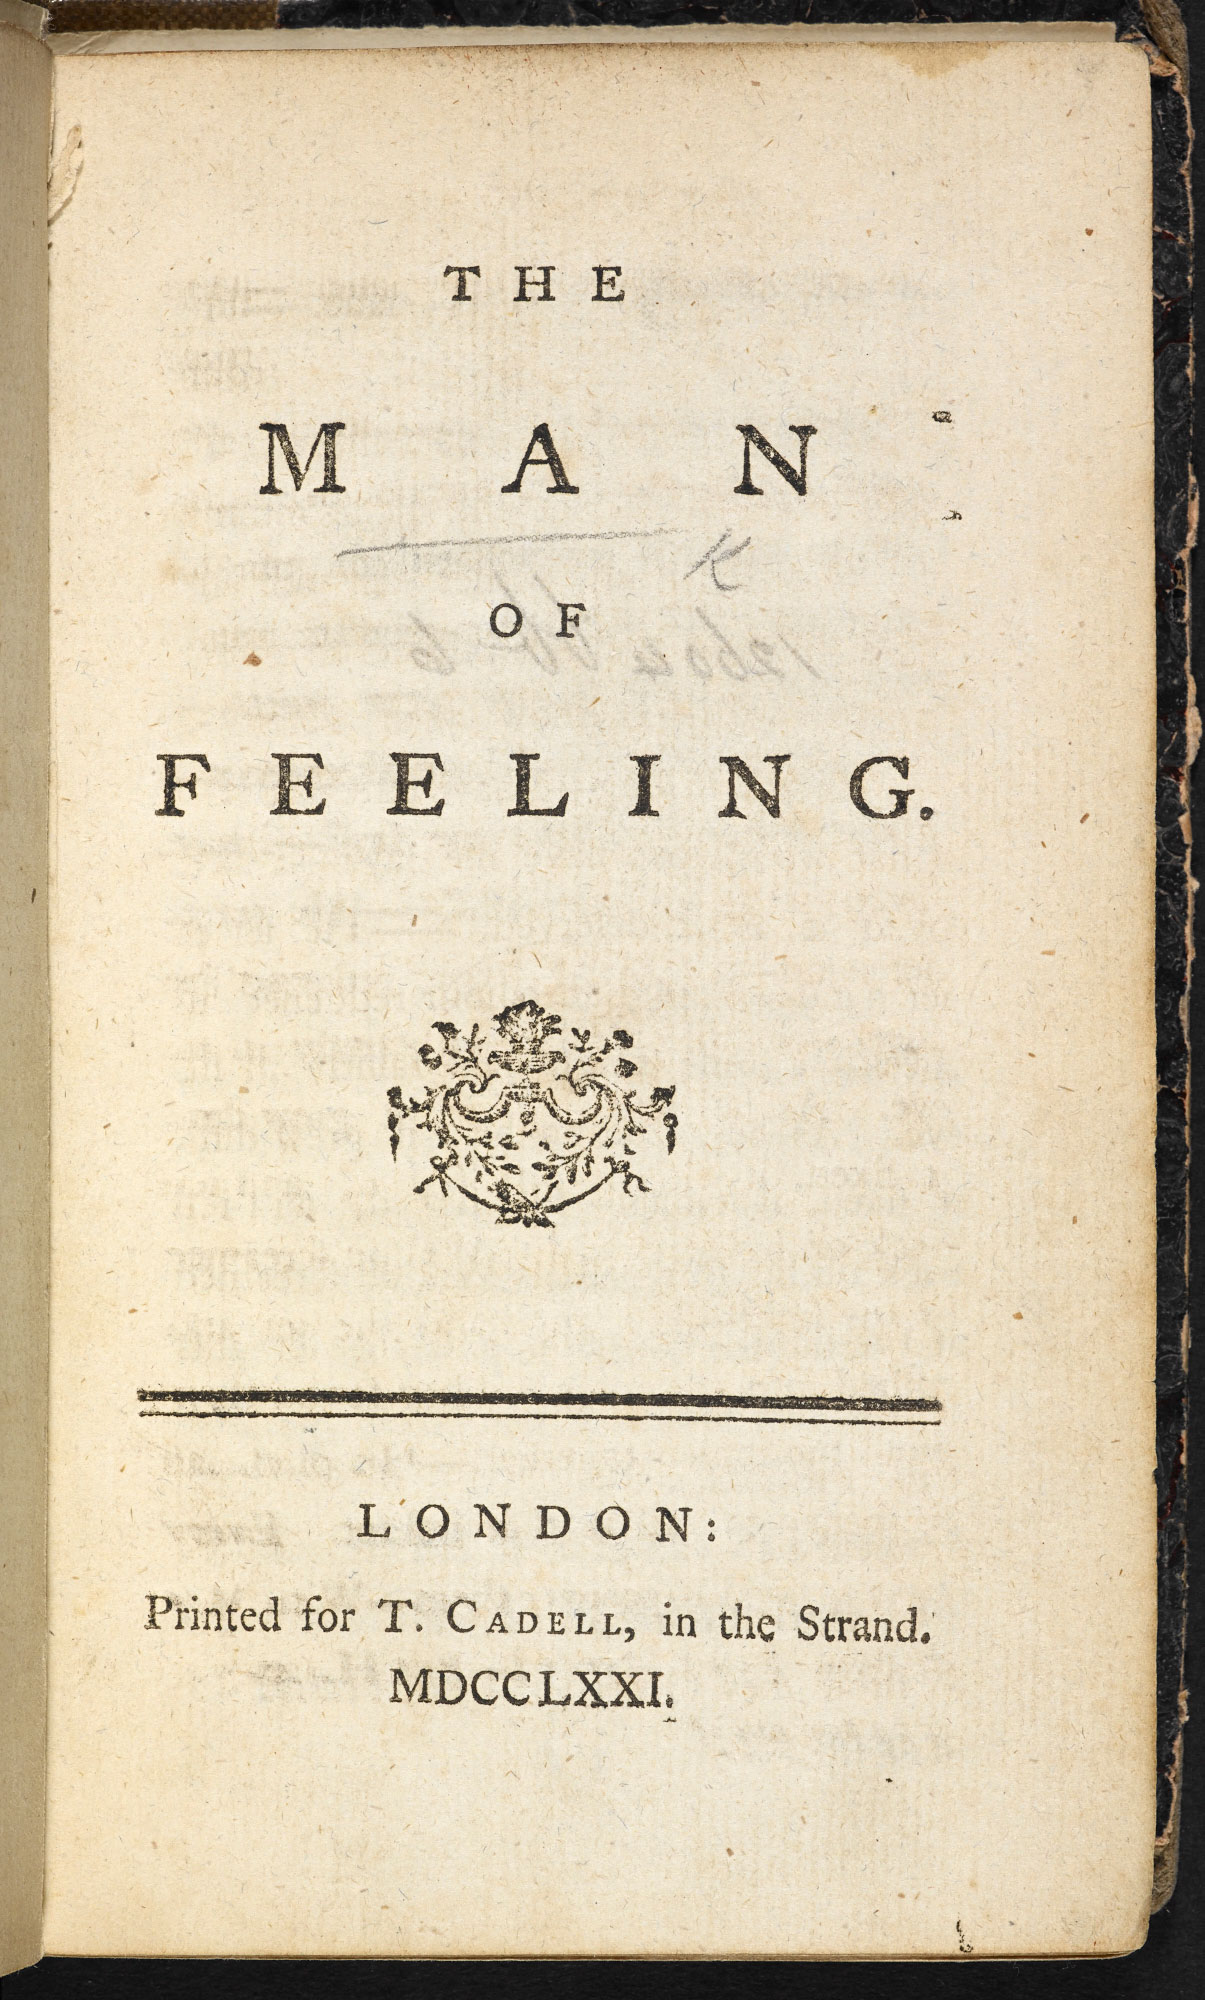 The Man of Feeling, a sentimental novel